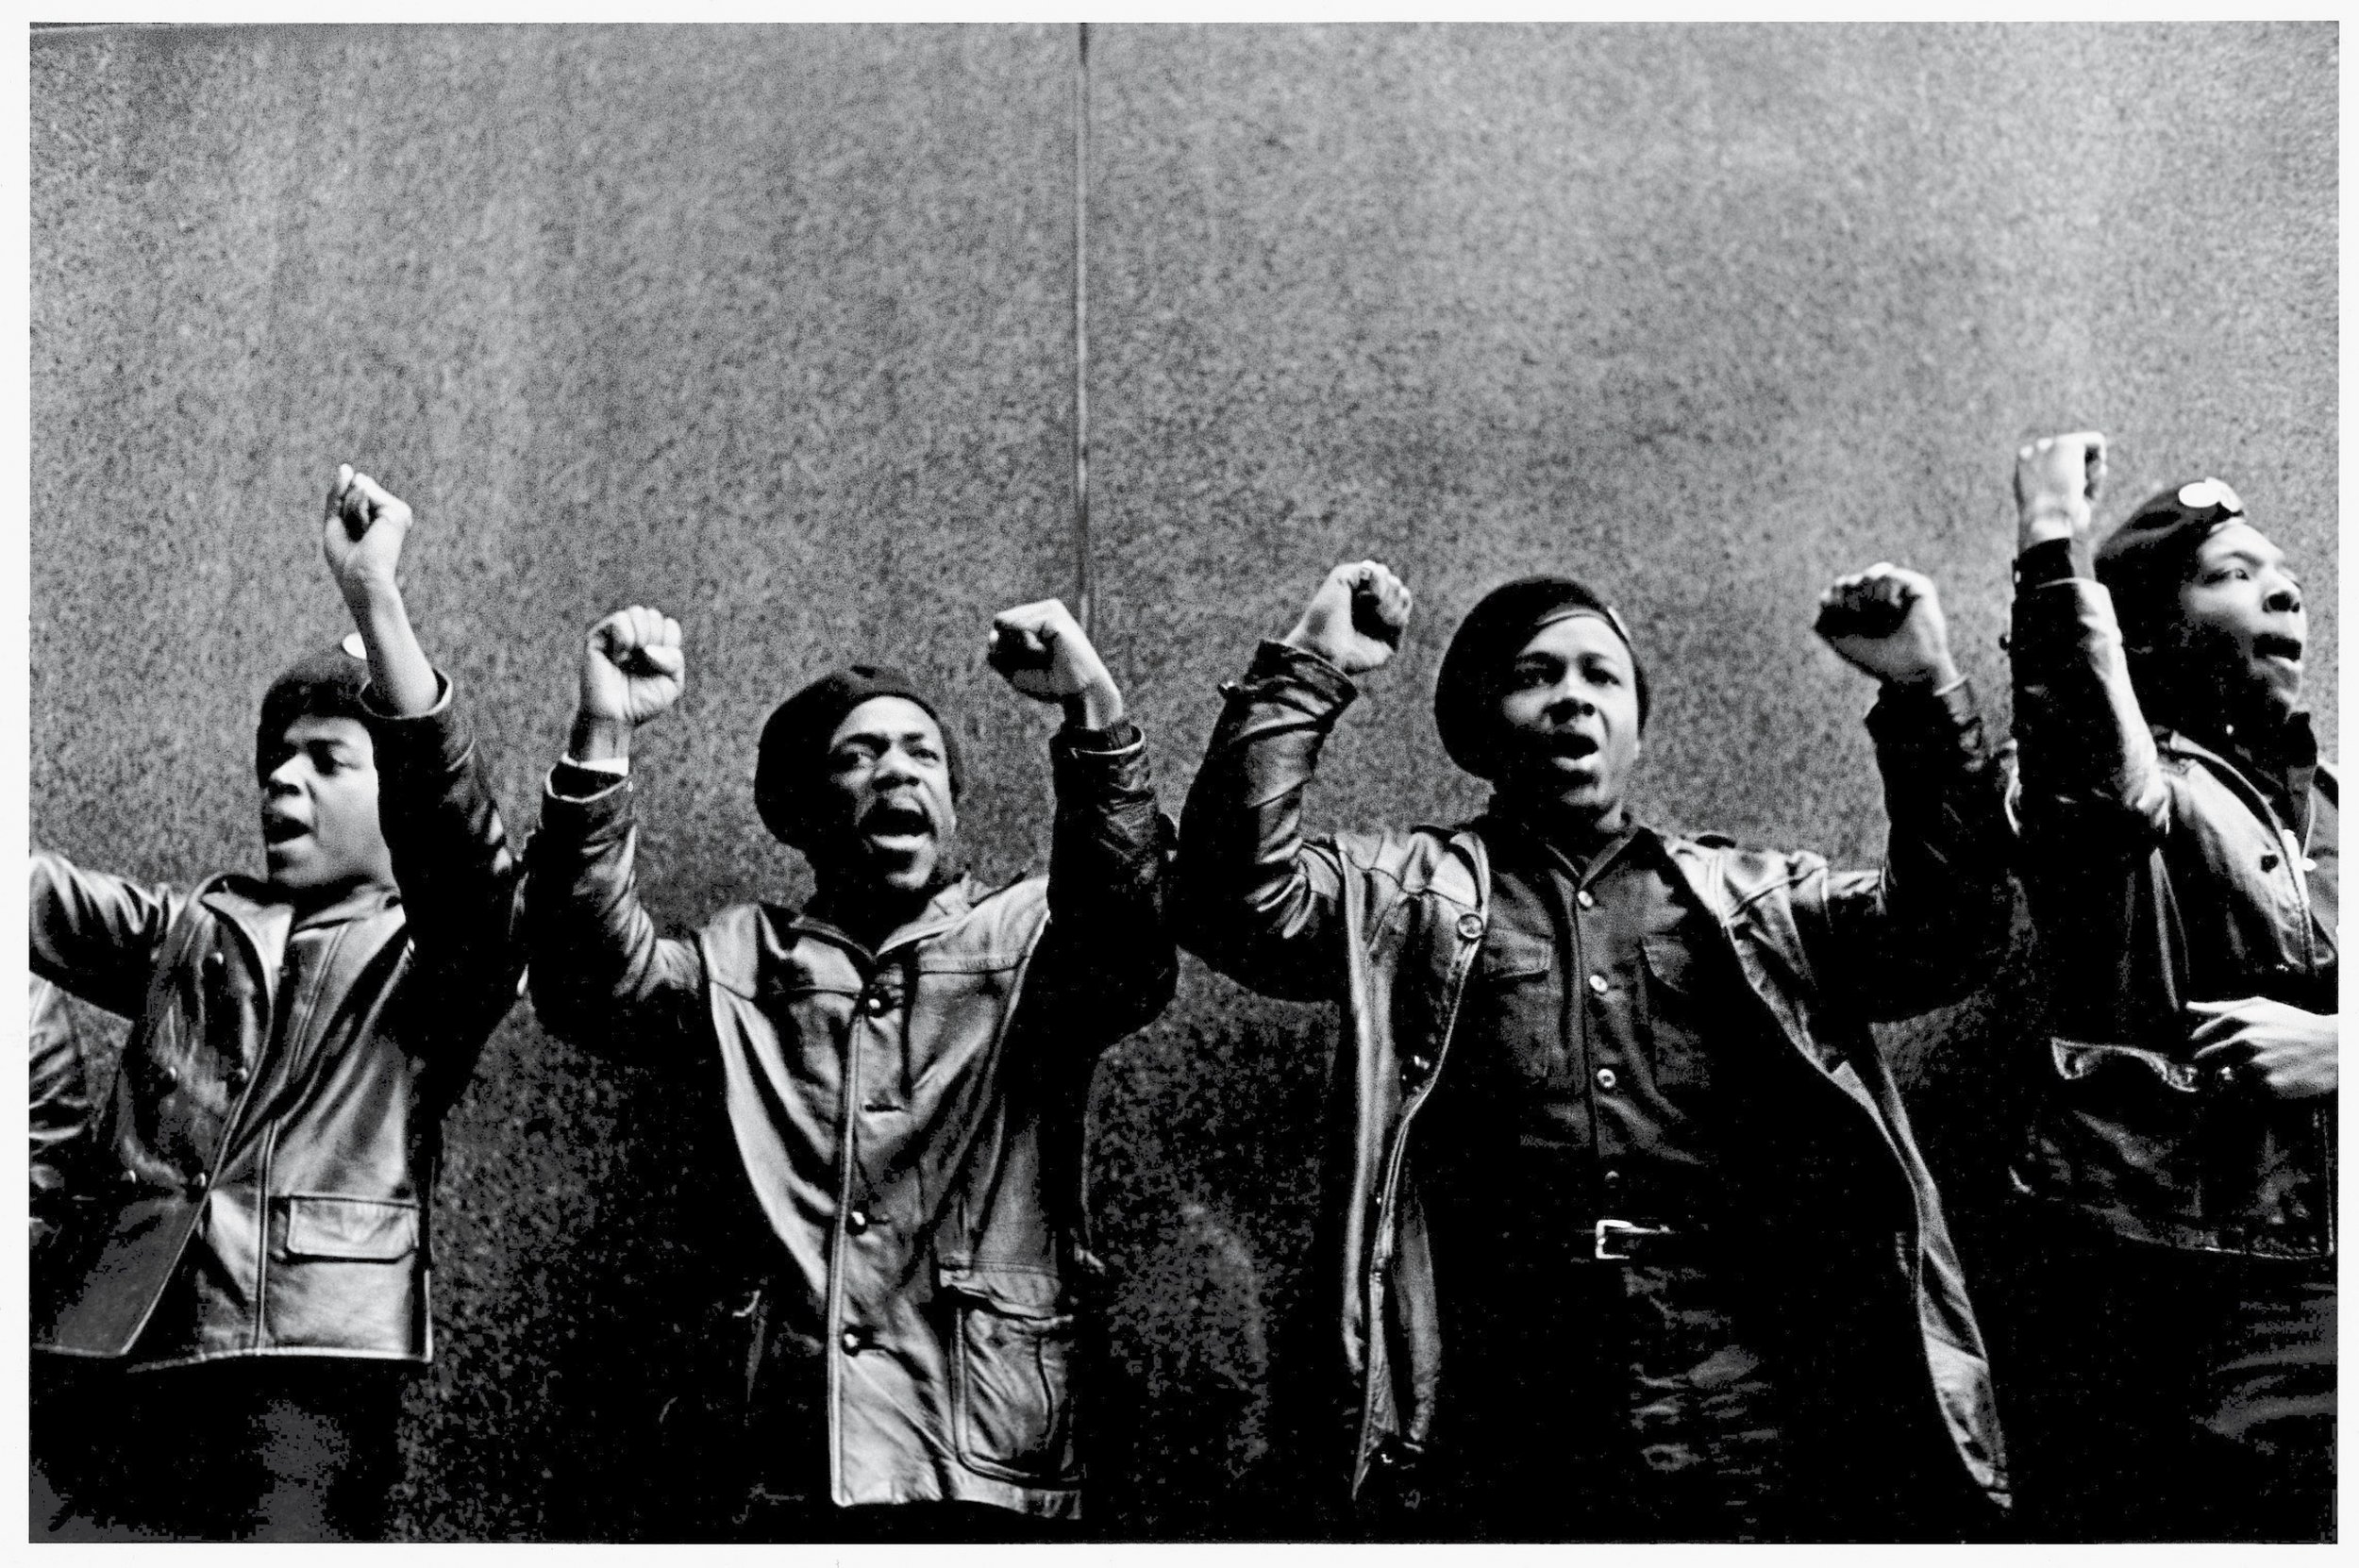 the history of the black panther party formed in the early 1960s By the early 1970s, women formed nearly two-thirds of the black panther party they not only served important leadership roles alongside the men, such as state and national secretaries, chair positions and editors, but they were also serving essential roles, such as feeding children, ensuring that they remained in schools and strategizing to protect.